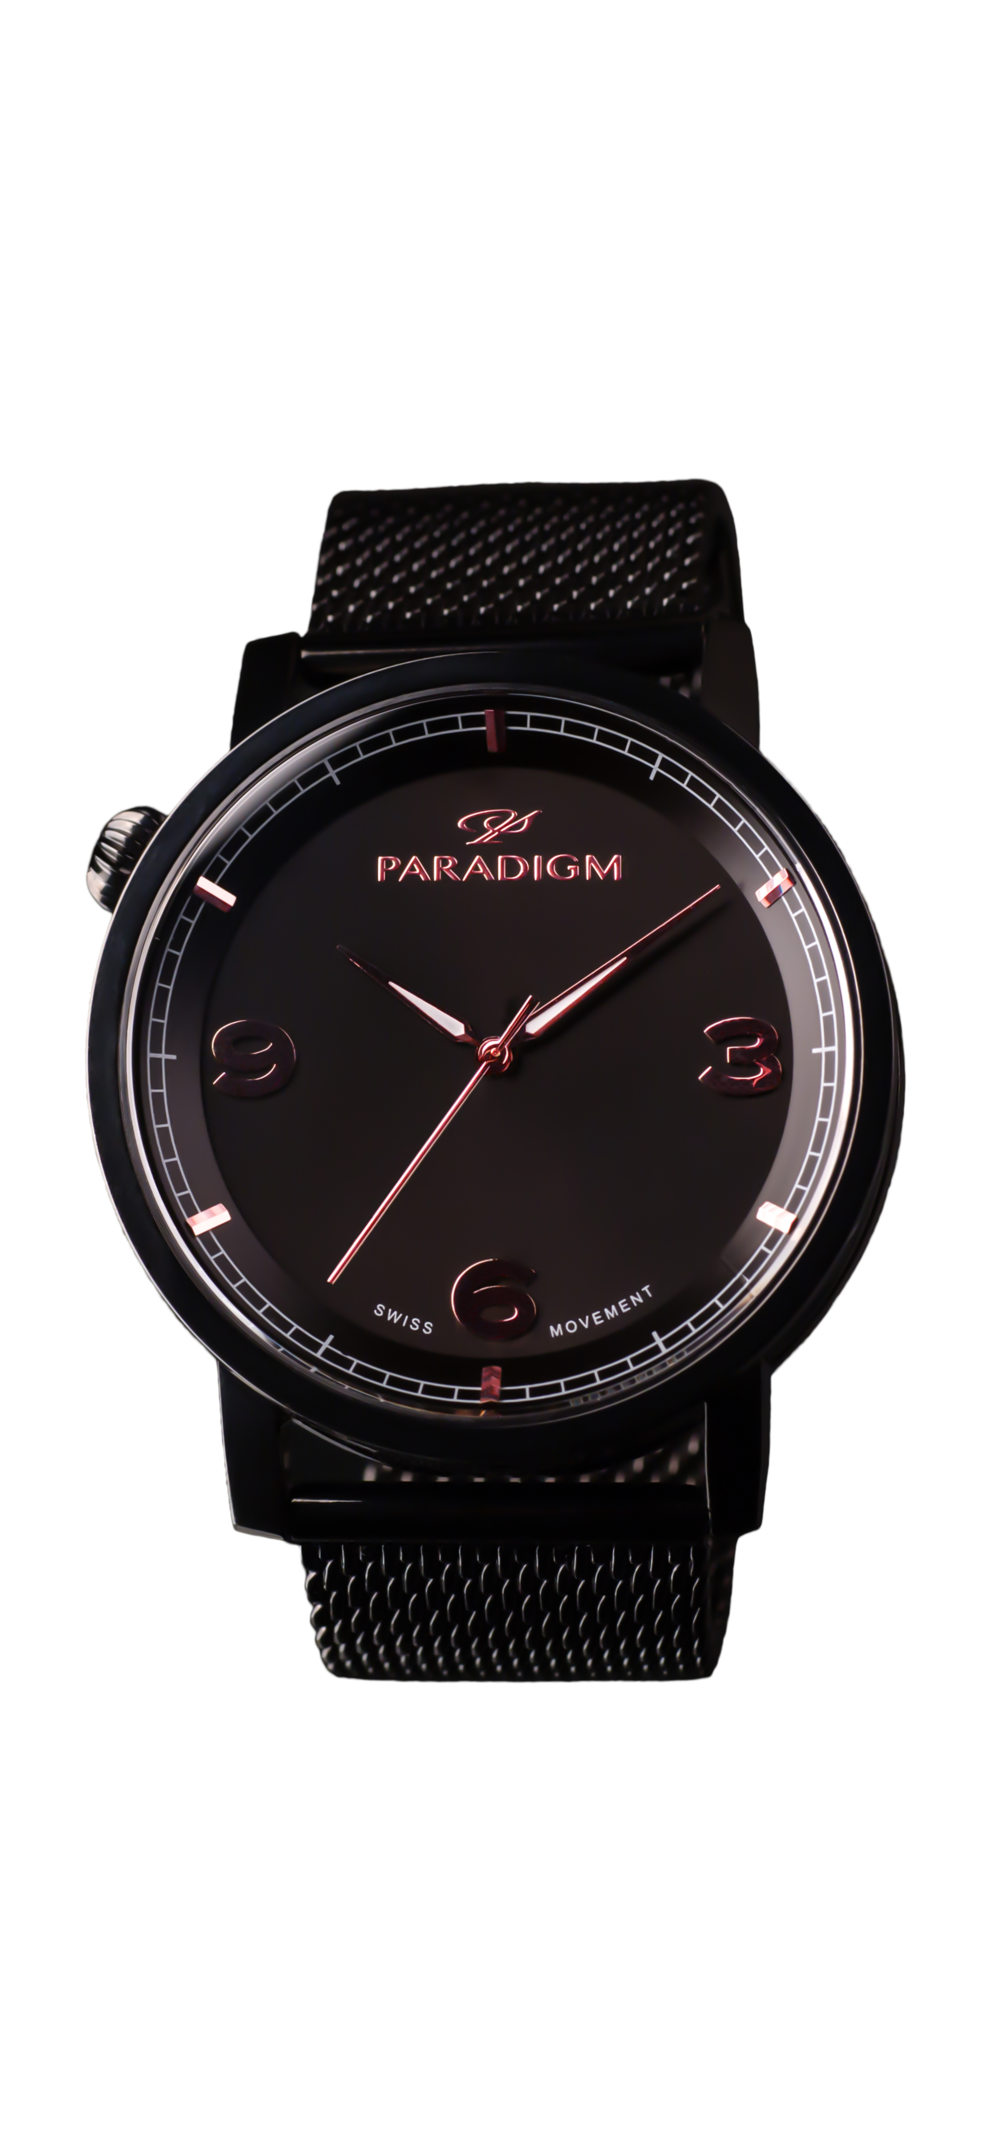 Paradigm-Mens-Black-Face-(No-Shadow).PNG